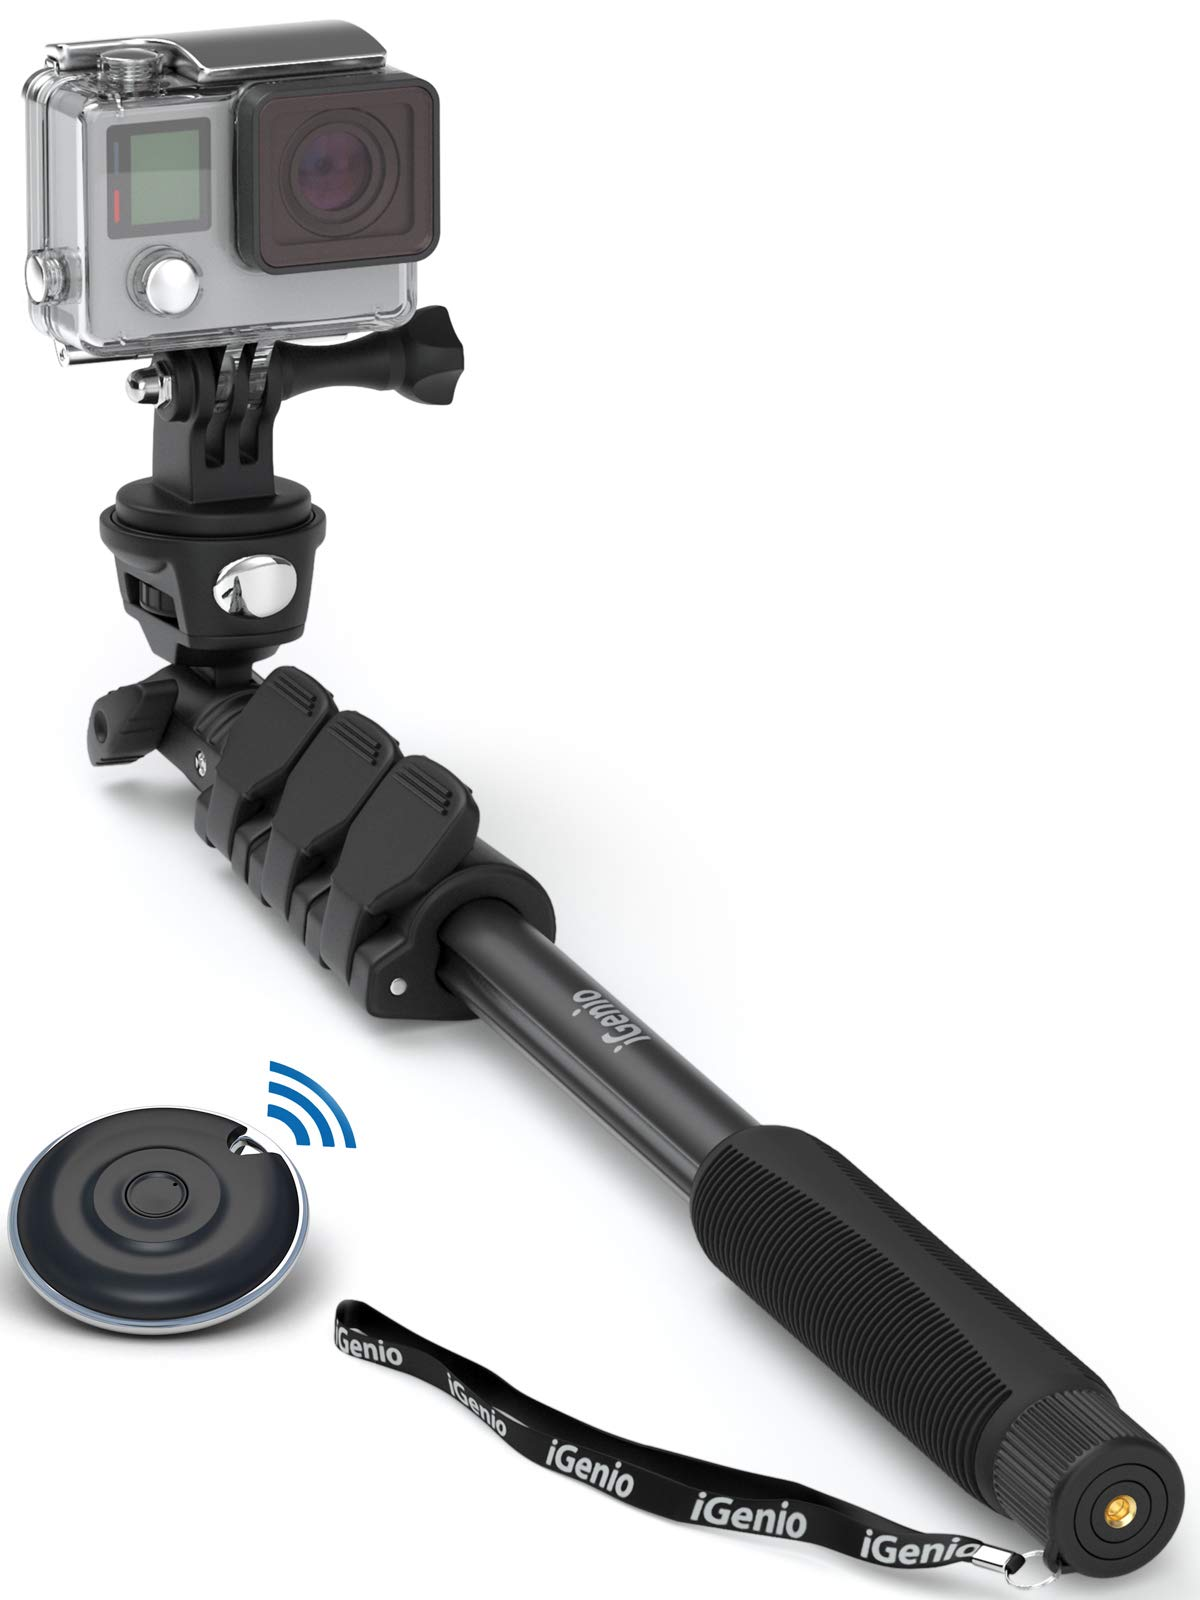 Professional 10-in-1 Monopod Selfie Stick for All GoPro Hero, Action Cameras, Cellphones, Digital Compacts with Bluetooth Remote Shutter - Extends 15''- 47'', Weatherproof Shockproof - Take It Anywhere by Selfie World